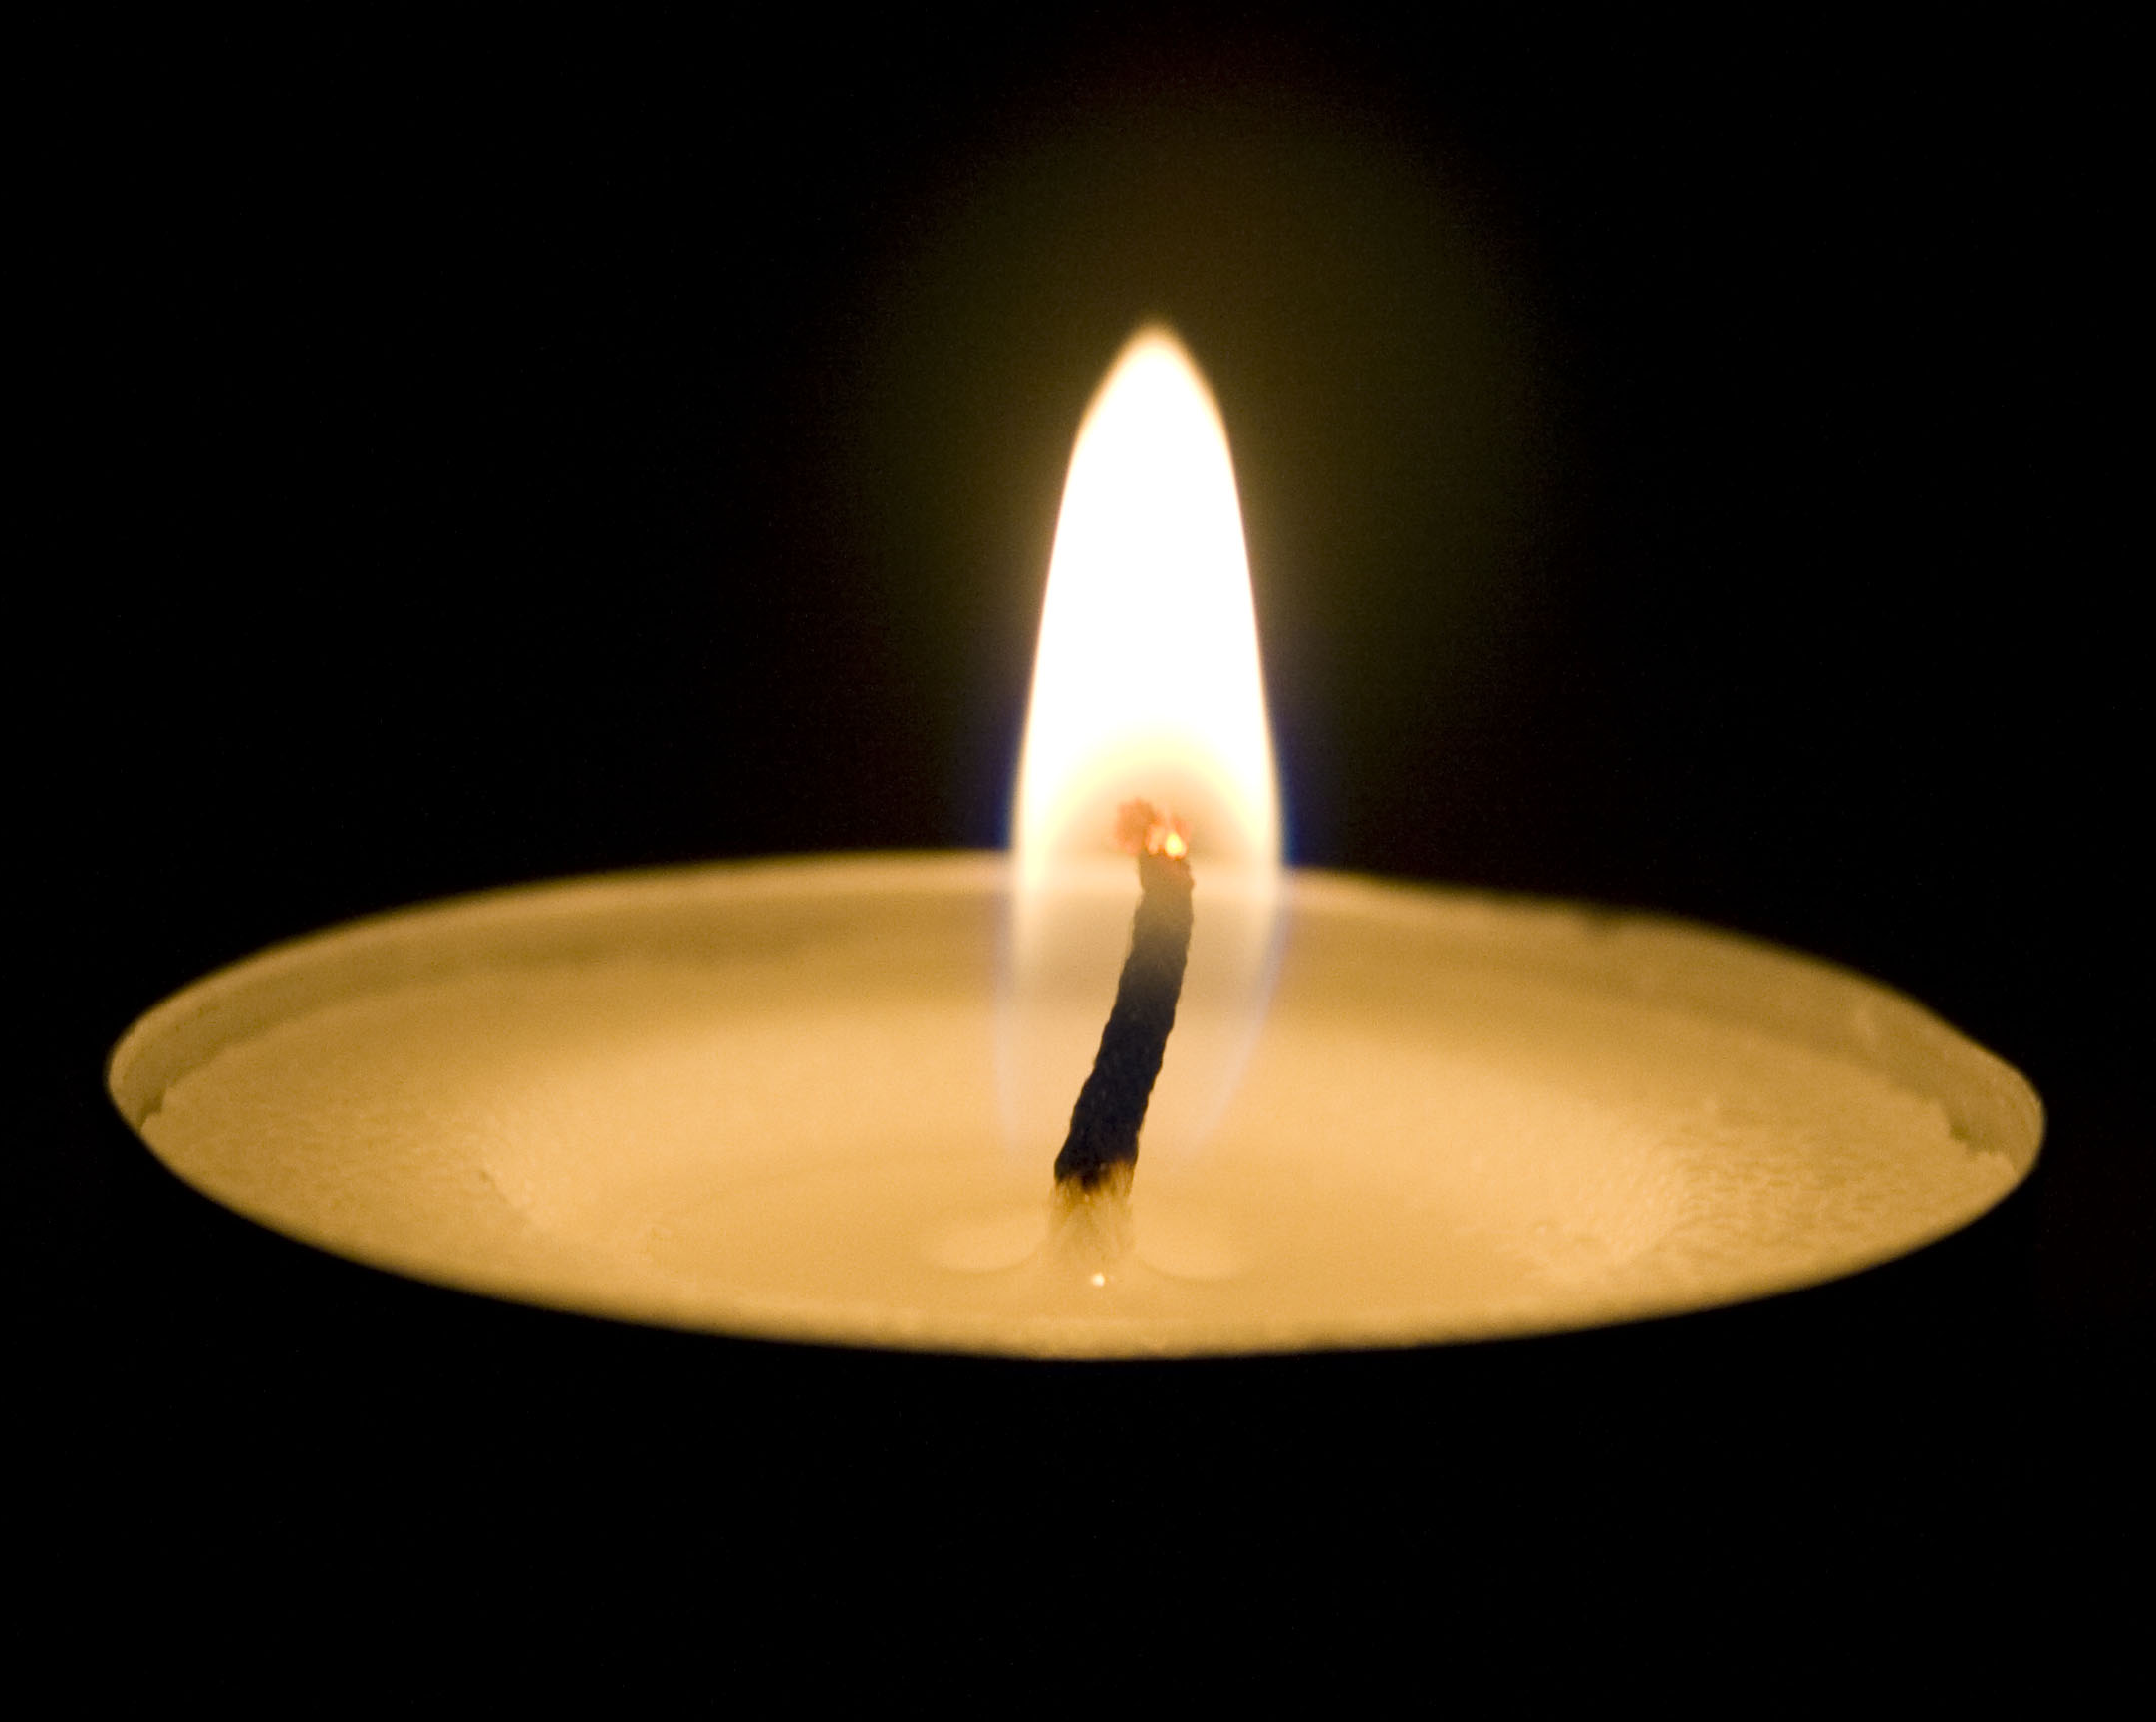 I Also Took Stills To Get A Closer Look At The Transparency Of Flame And The - Burning Candle PNG HD